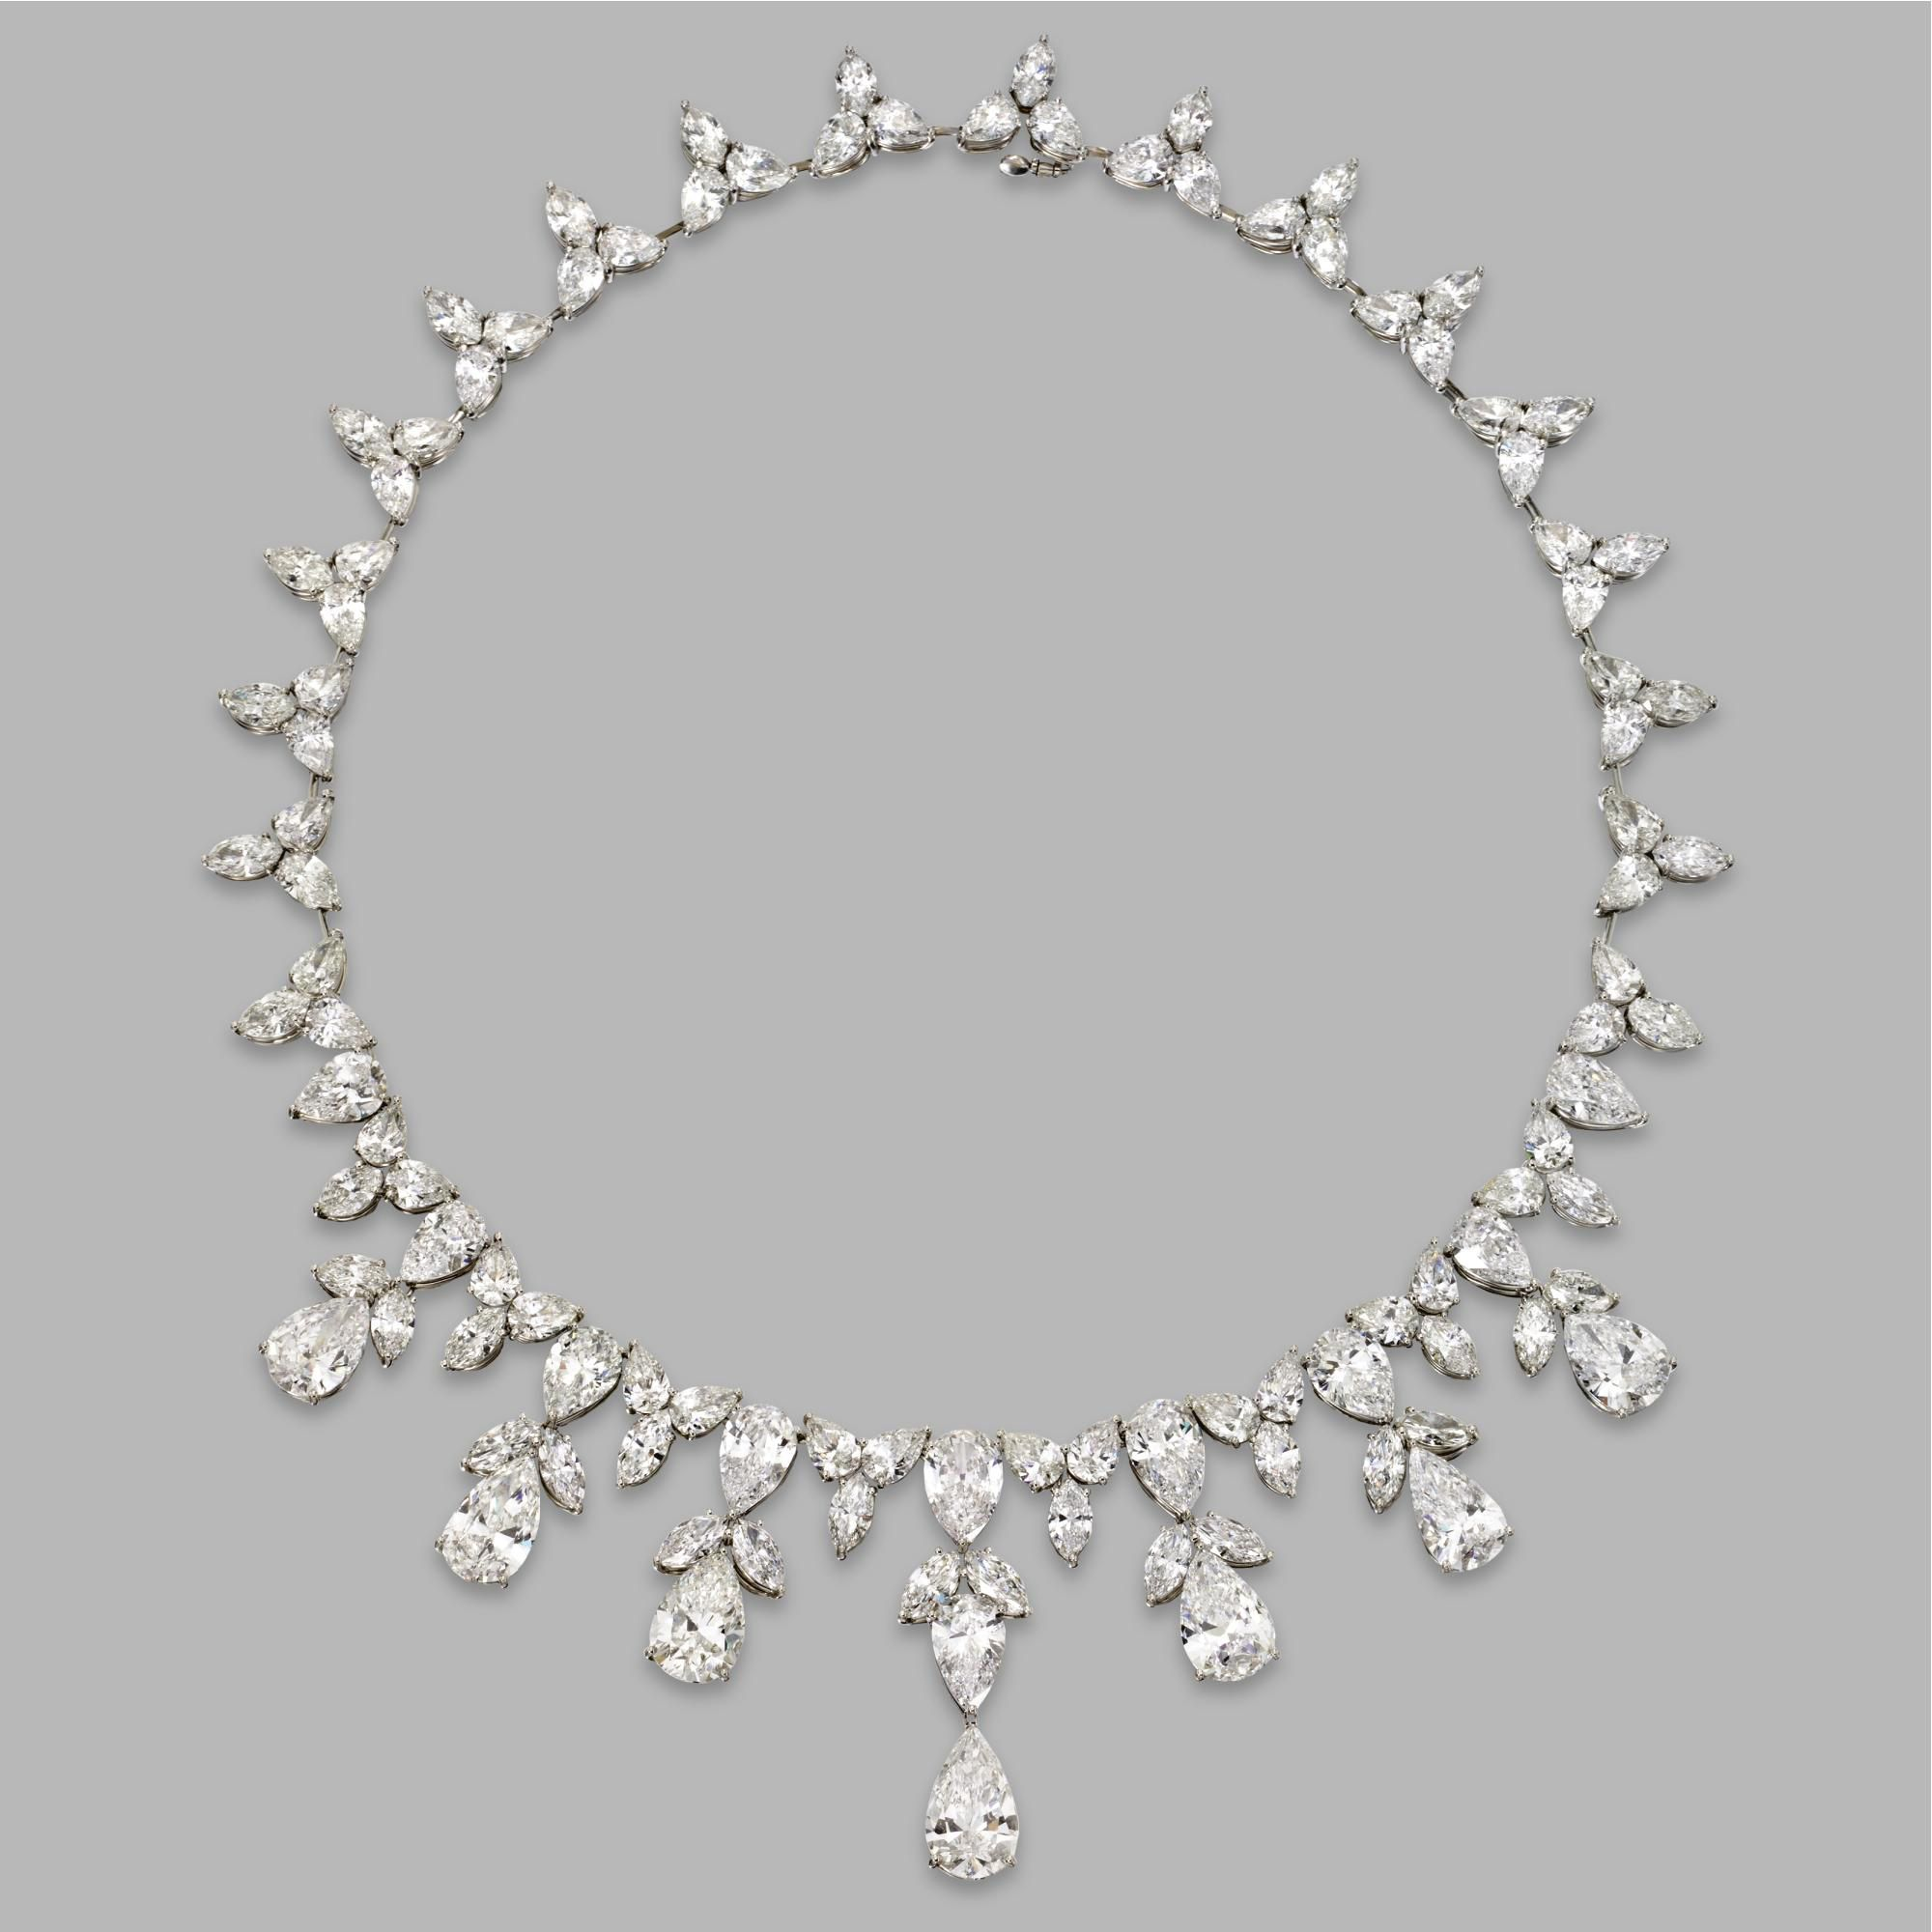 Diamond necklace the flexible necklace of foliate design set with